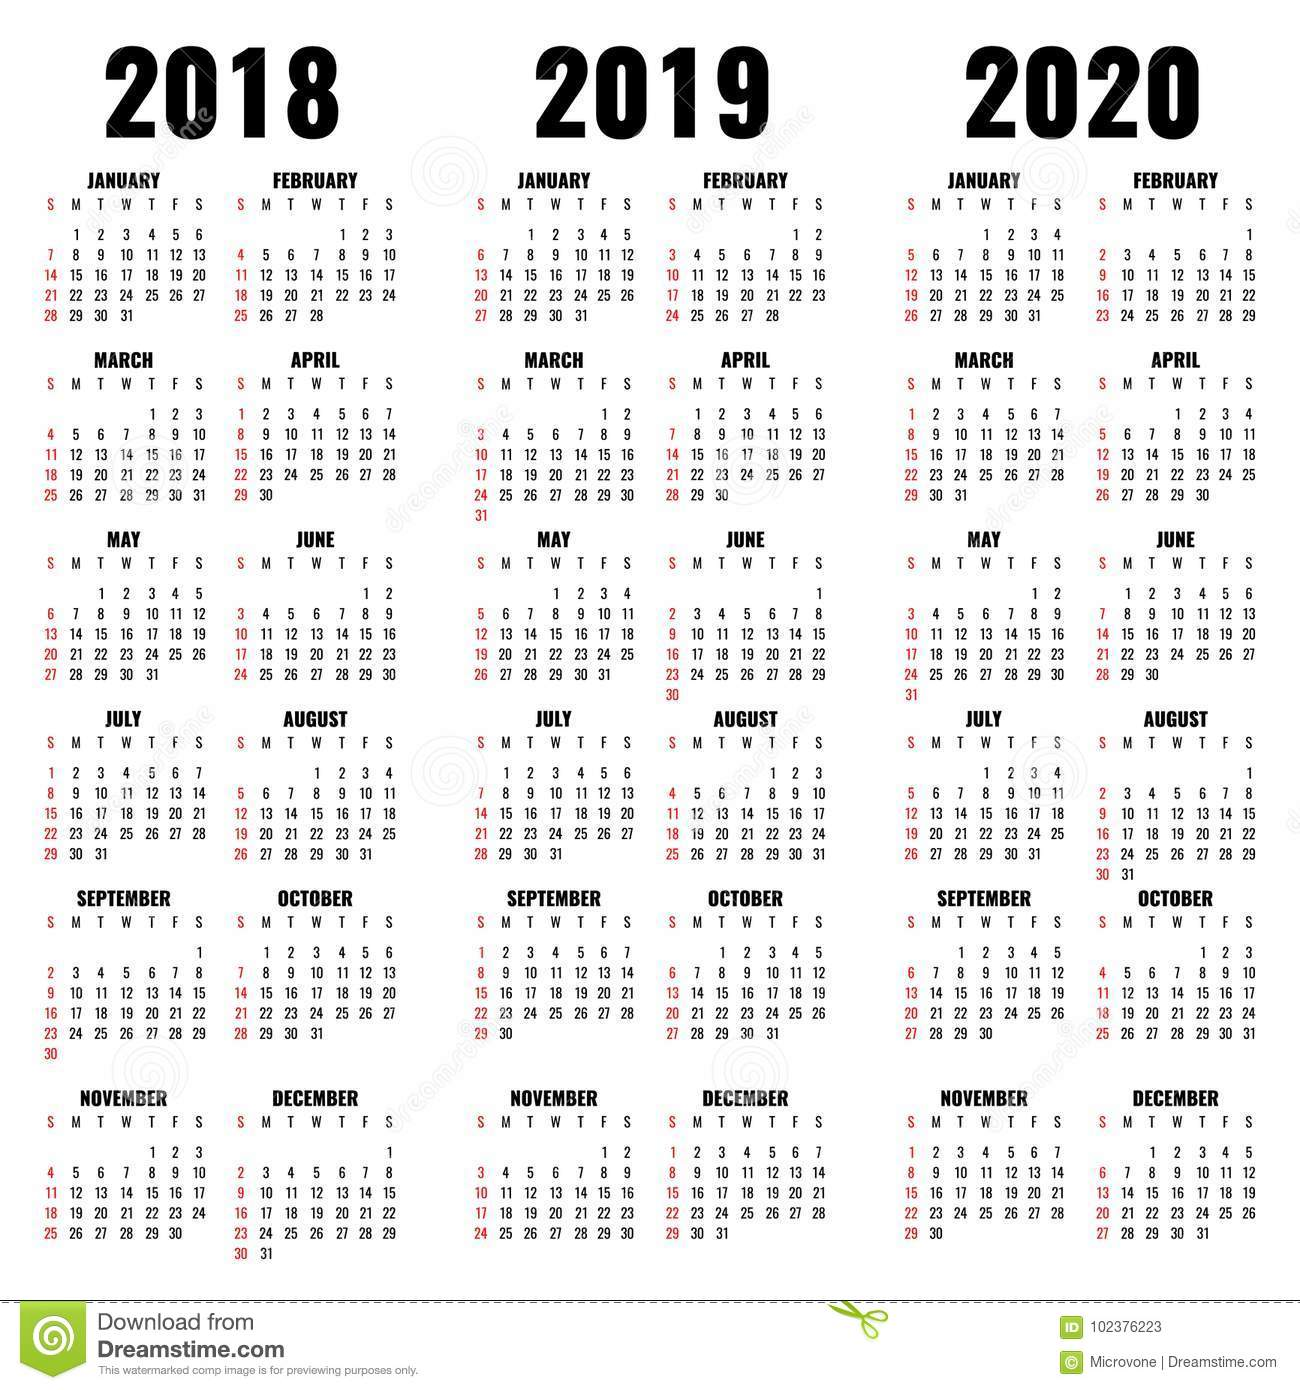 Calendario 2020 Vector Gratis.Vector Calendar Template 2018 2019 And 2020 Years Stock